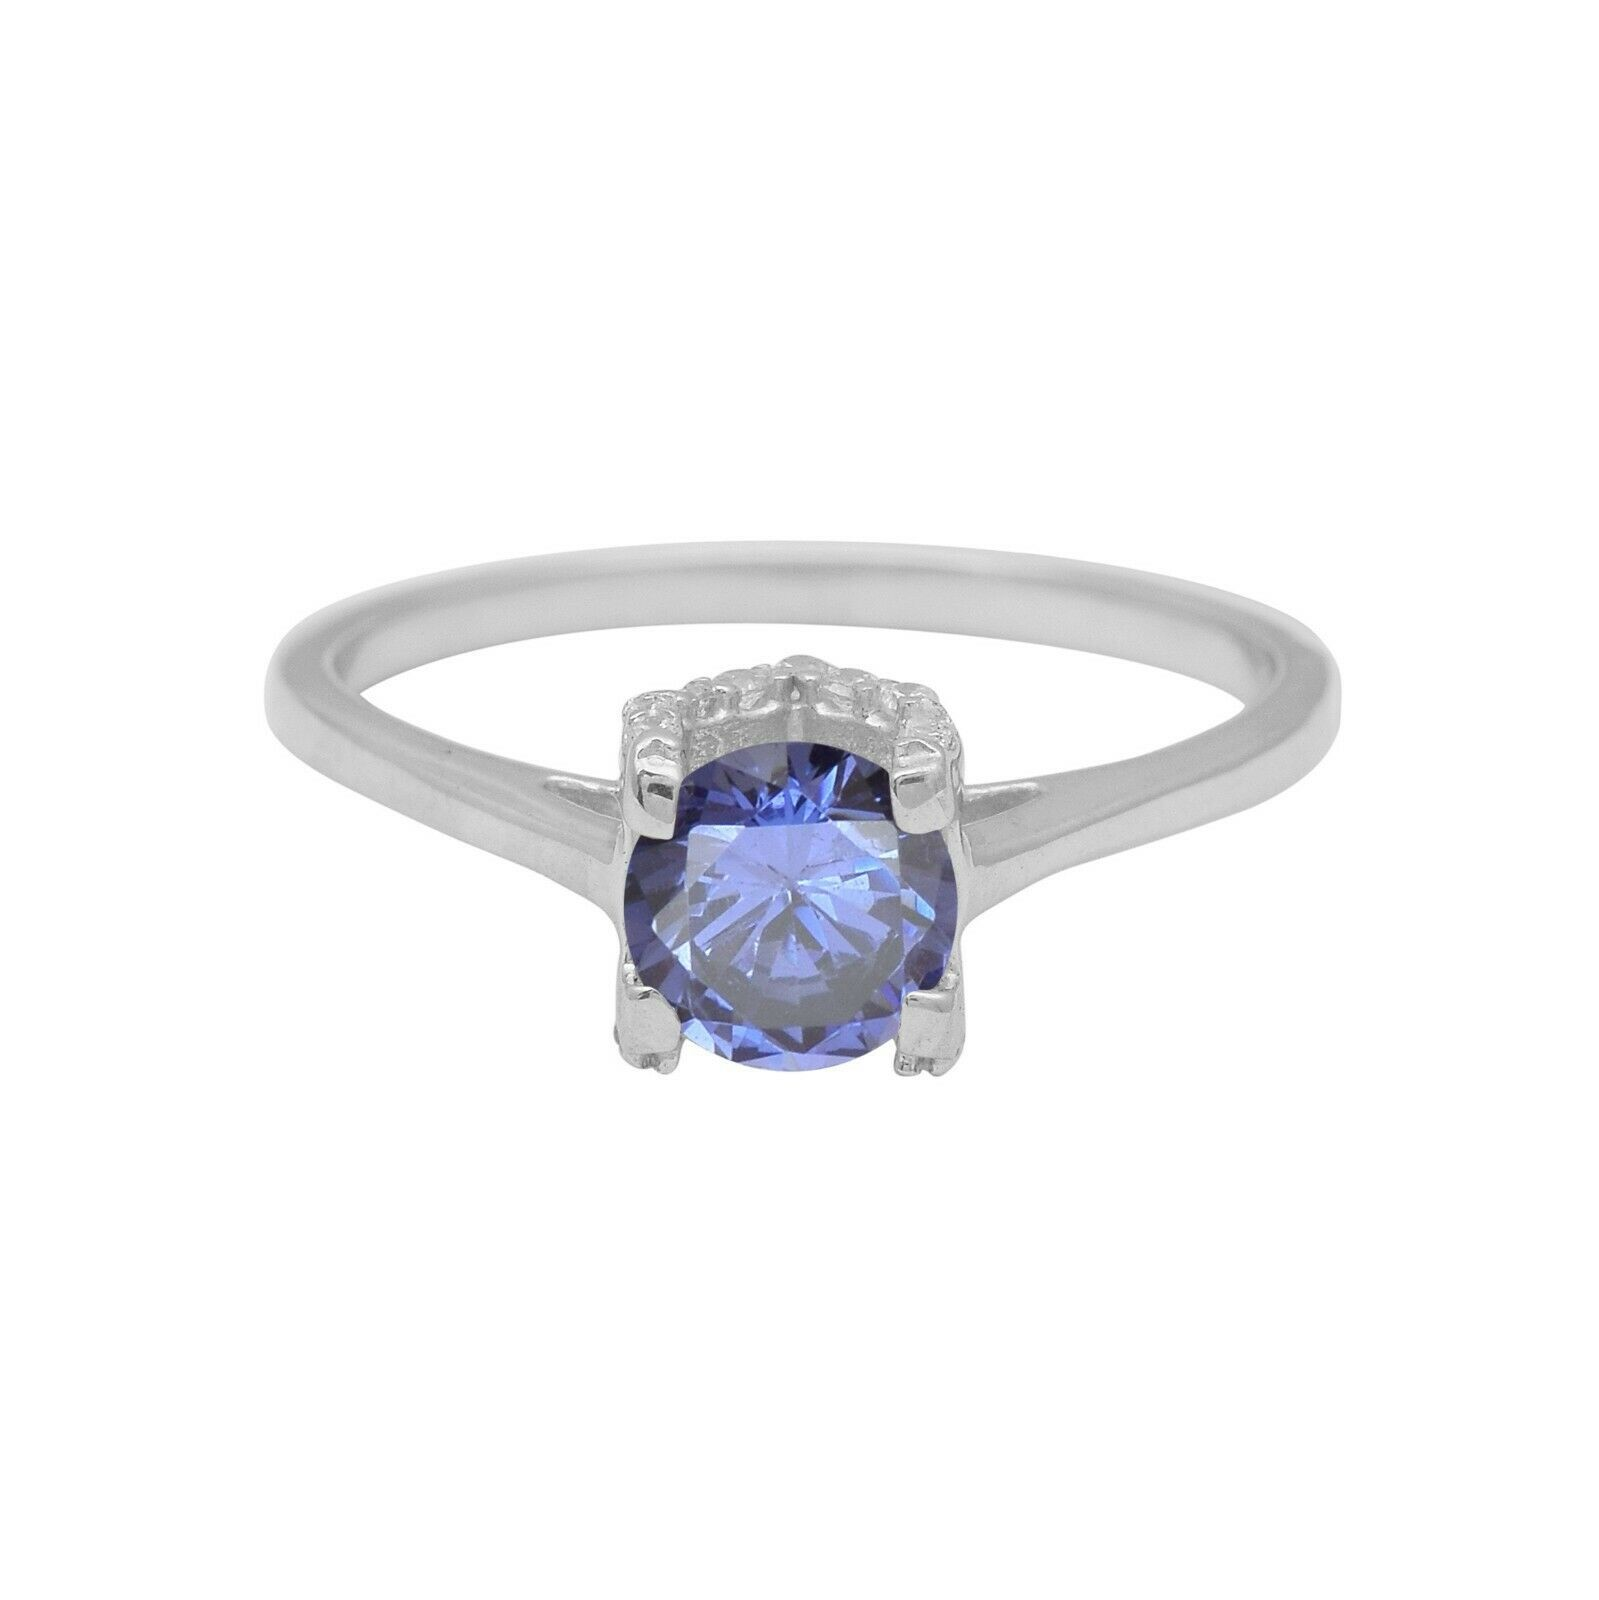 925 Sterling Silver Simuleted Tanzanite 1.45Ct Round Cubic Zircon Solitaire RIng